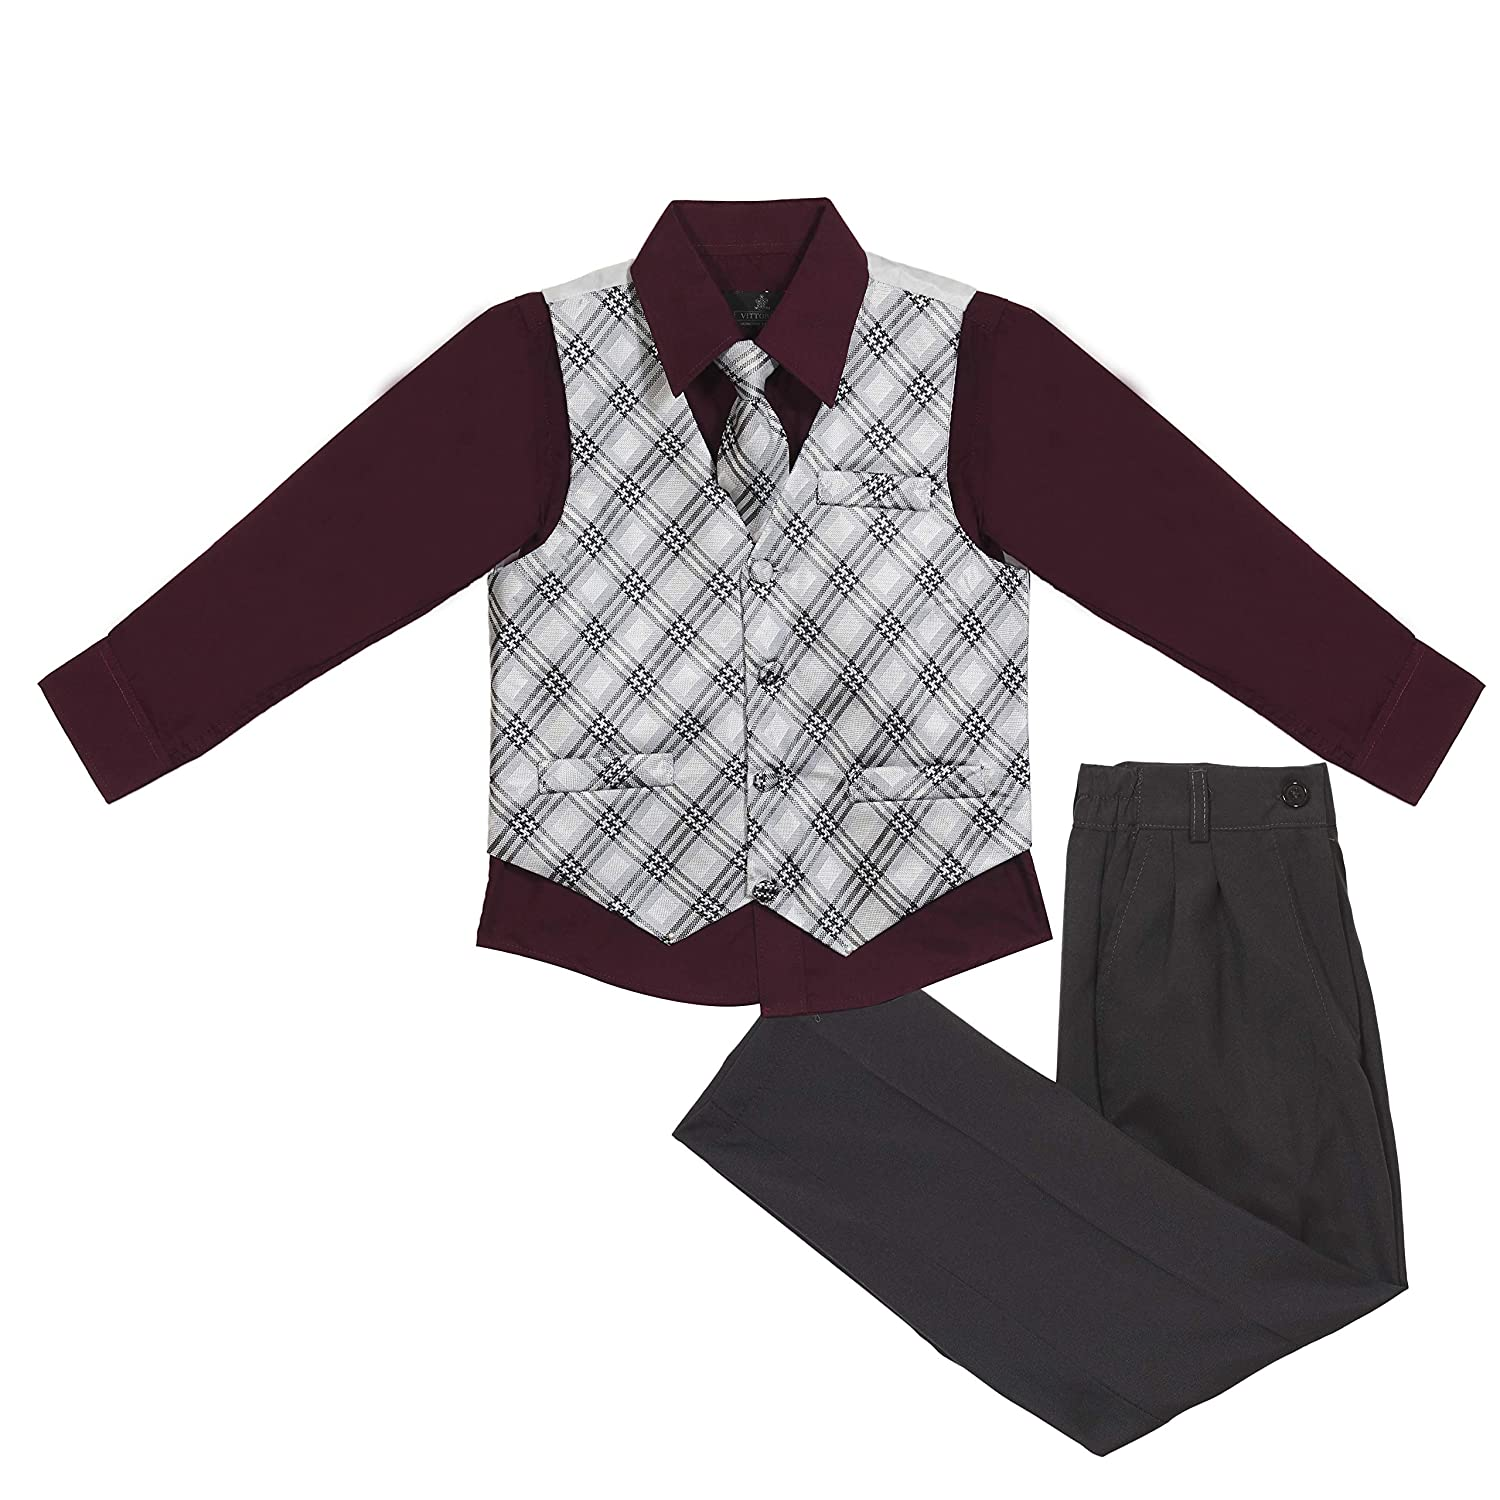 Vittorino Boys Jacquard 4 Piece Suit Set with Vest Pants Dress Shirt and Tie Boys-JacquardVest-4-16